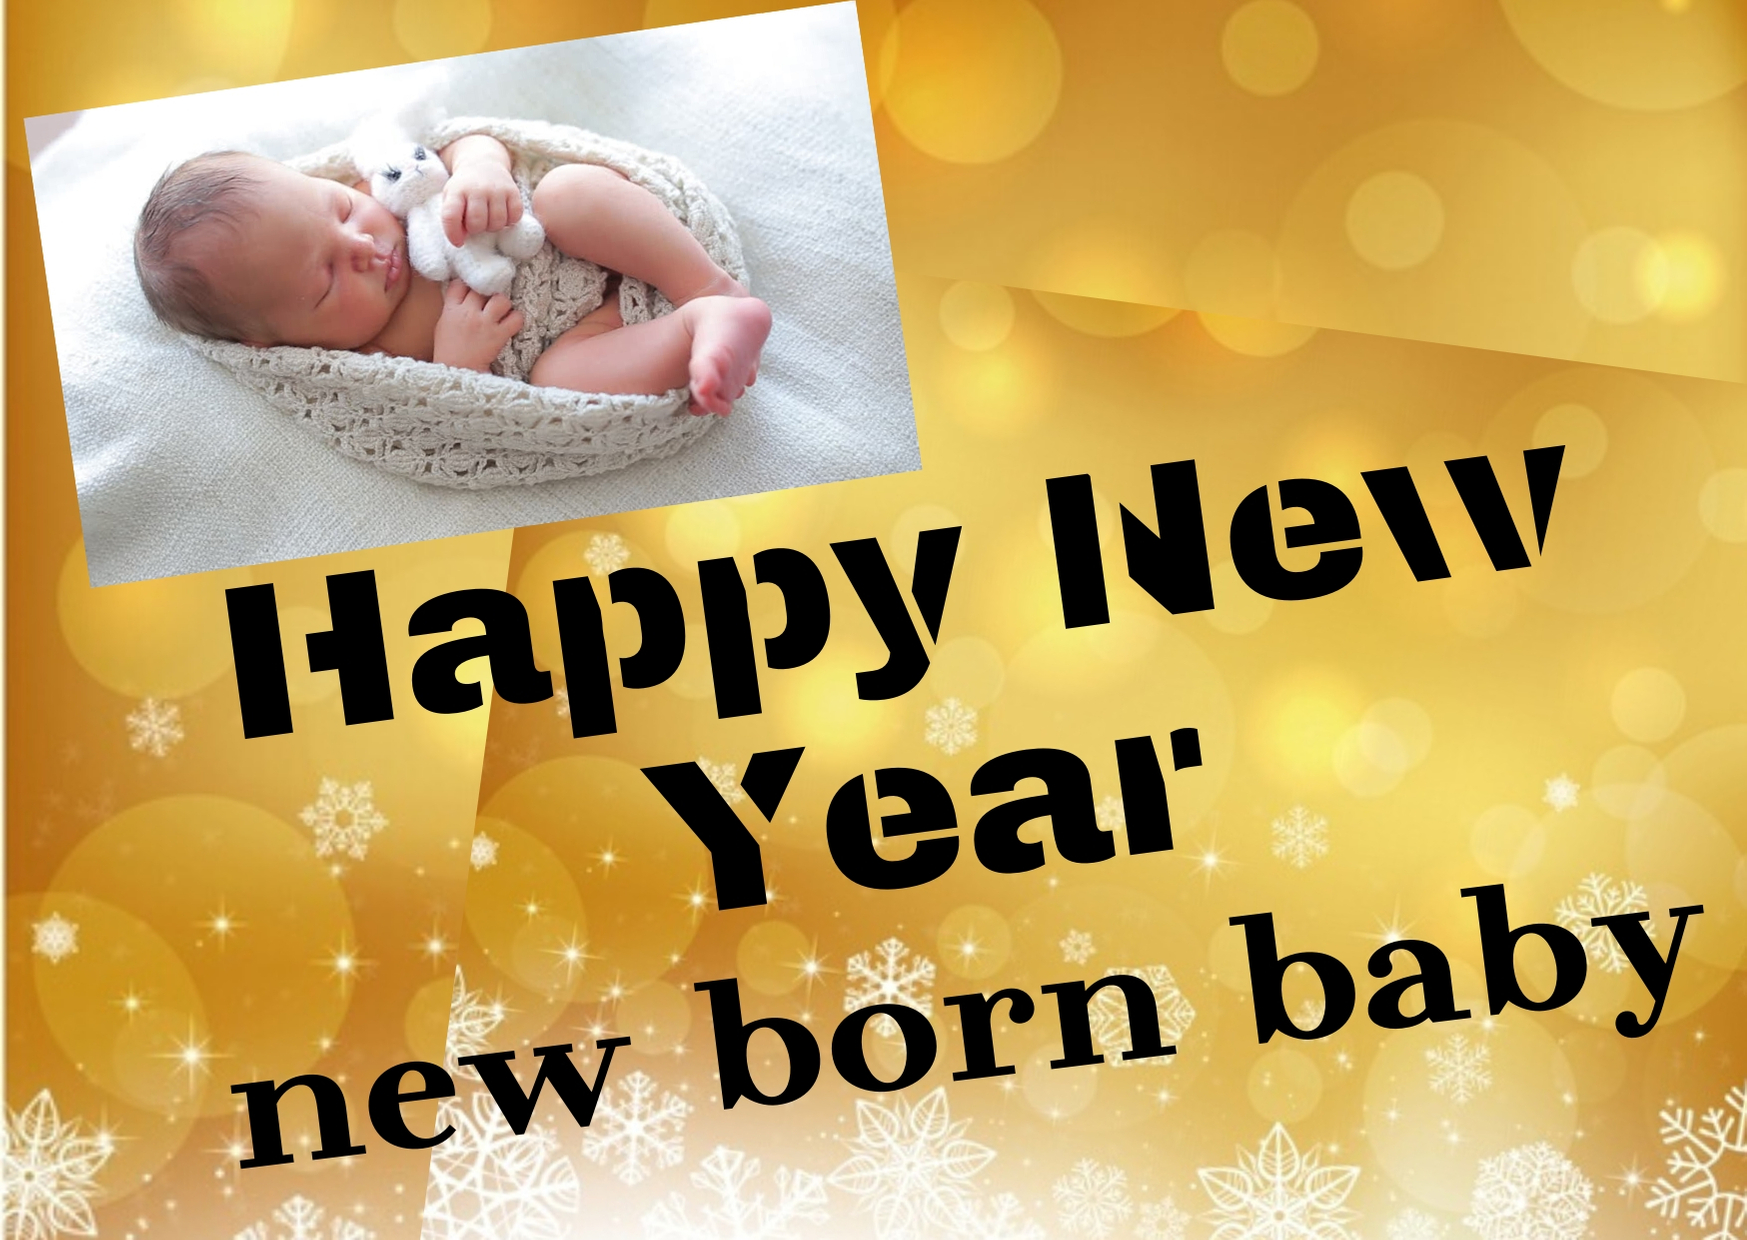 Happy New Year 2020 Wishes For New Born Baby